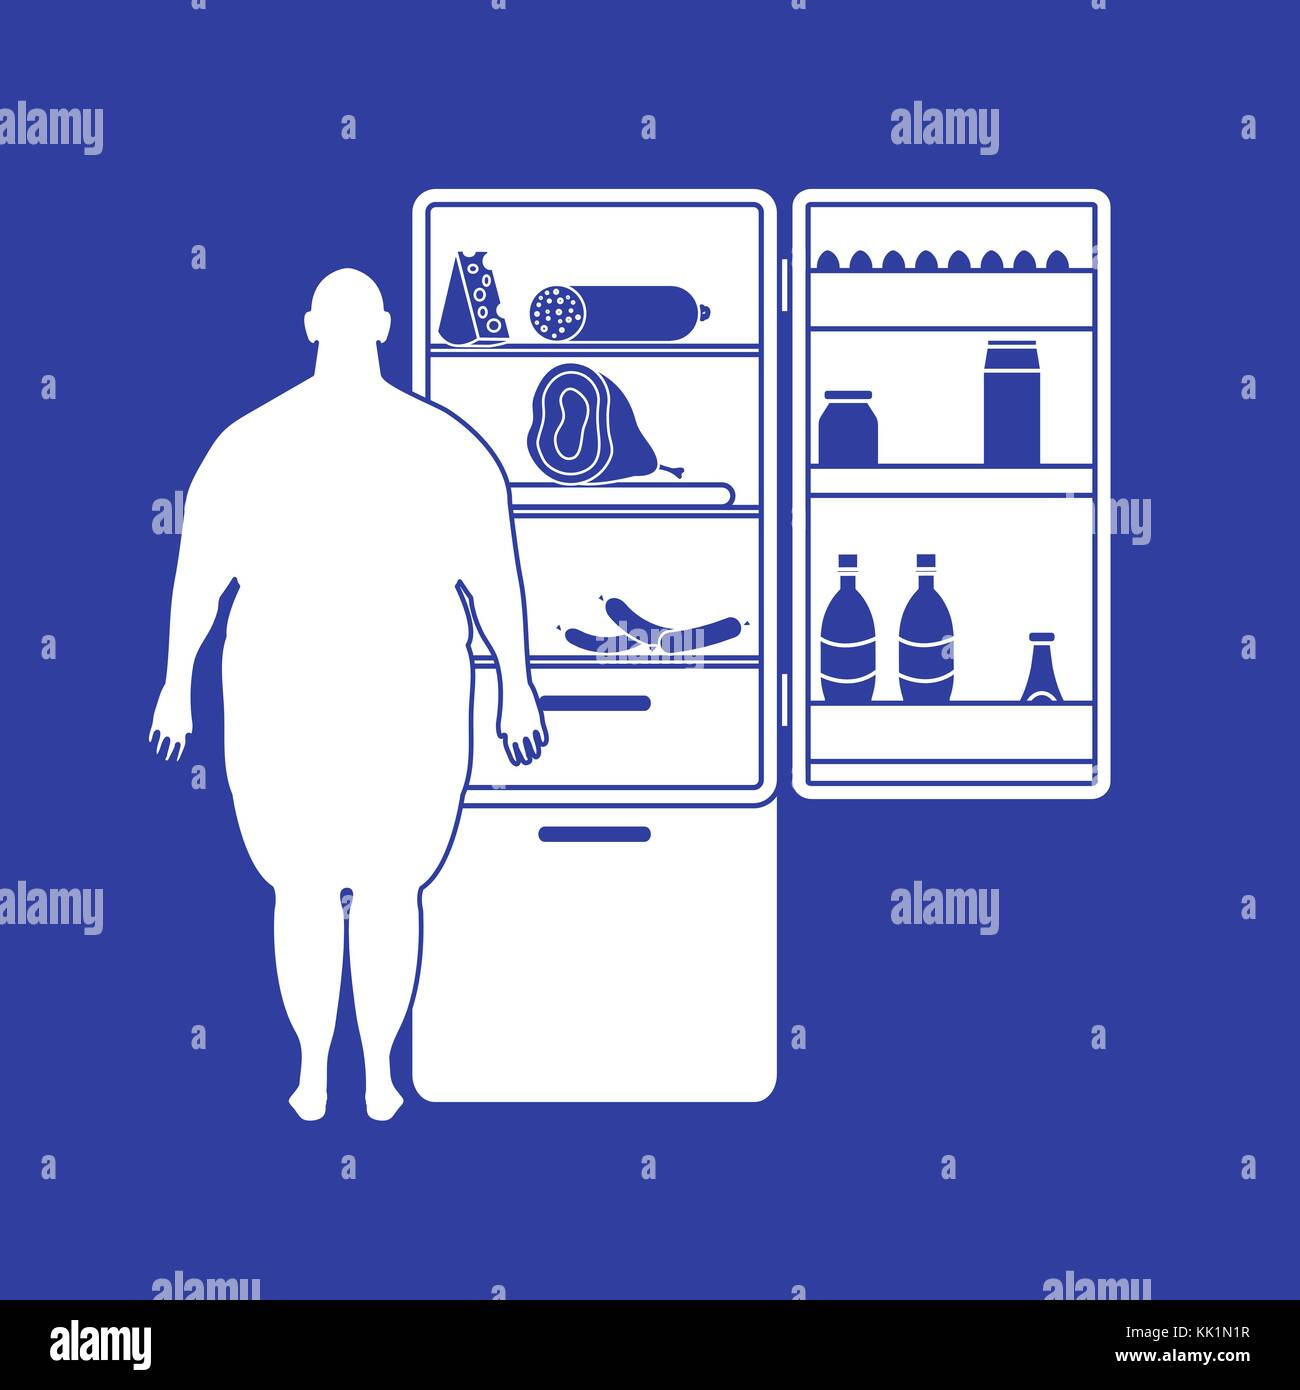 Fat man stands at the fridge full of food. Harmful eating habits. Design for banner and print. - Stock Vector